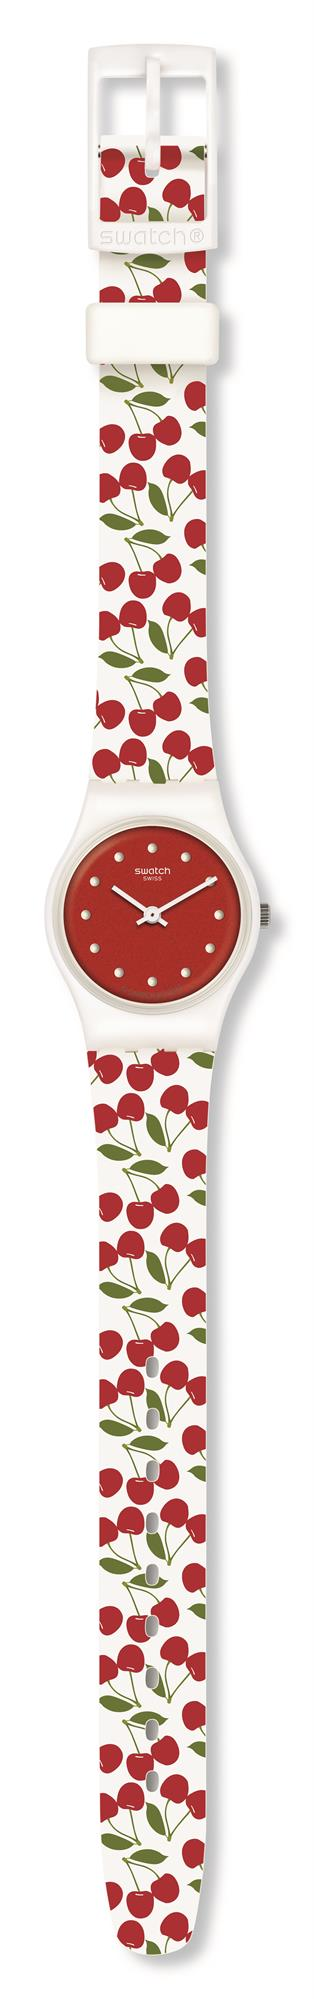 Swatch Cerise Moi Cherry White Silicone Strap Red Dial Ladies Watch LW167 25mmThis Swatch Cerise Moi Cherry White Silicone Strap Red Dial Ladies Watch LW167 25mm is a magnificient addition to the energy boost collection. The cherry red dial is complimented by white circular indexes and hands, powered by a quartz movement. Surrounding the cherry red dial is a white plastic case and plastic glass. Finally a white silicone strap jampacked with cherries and fastened by a standard buckle.This watch has a water resistance of 30 metres, making it suitable for light splashes.Key Features:White Cherry Silicone StrapRed DialStandard BuckleQuartz Movement30m Water ResistantWhite Plastic CaseThe Brand: SwatchSwatch watches are globally-renowned for their trademark combination of quality Swiss watchmaking, pioneering use of plastic cases and straps, and eye-catching designs. There is a Swatch watch to suit every age, taste and lifestyle, with this variety and sense of difference ensuring that Swatch watches remain some of the most popular and sought after currently manufactured.